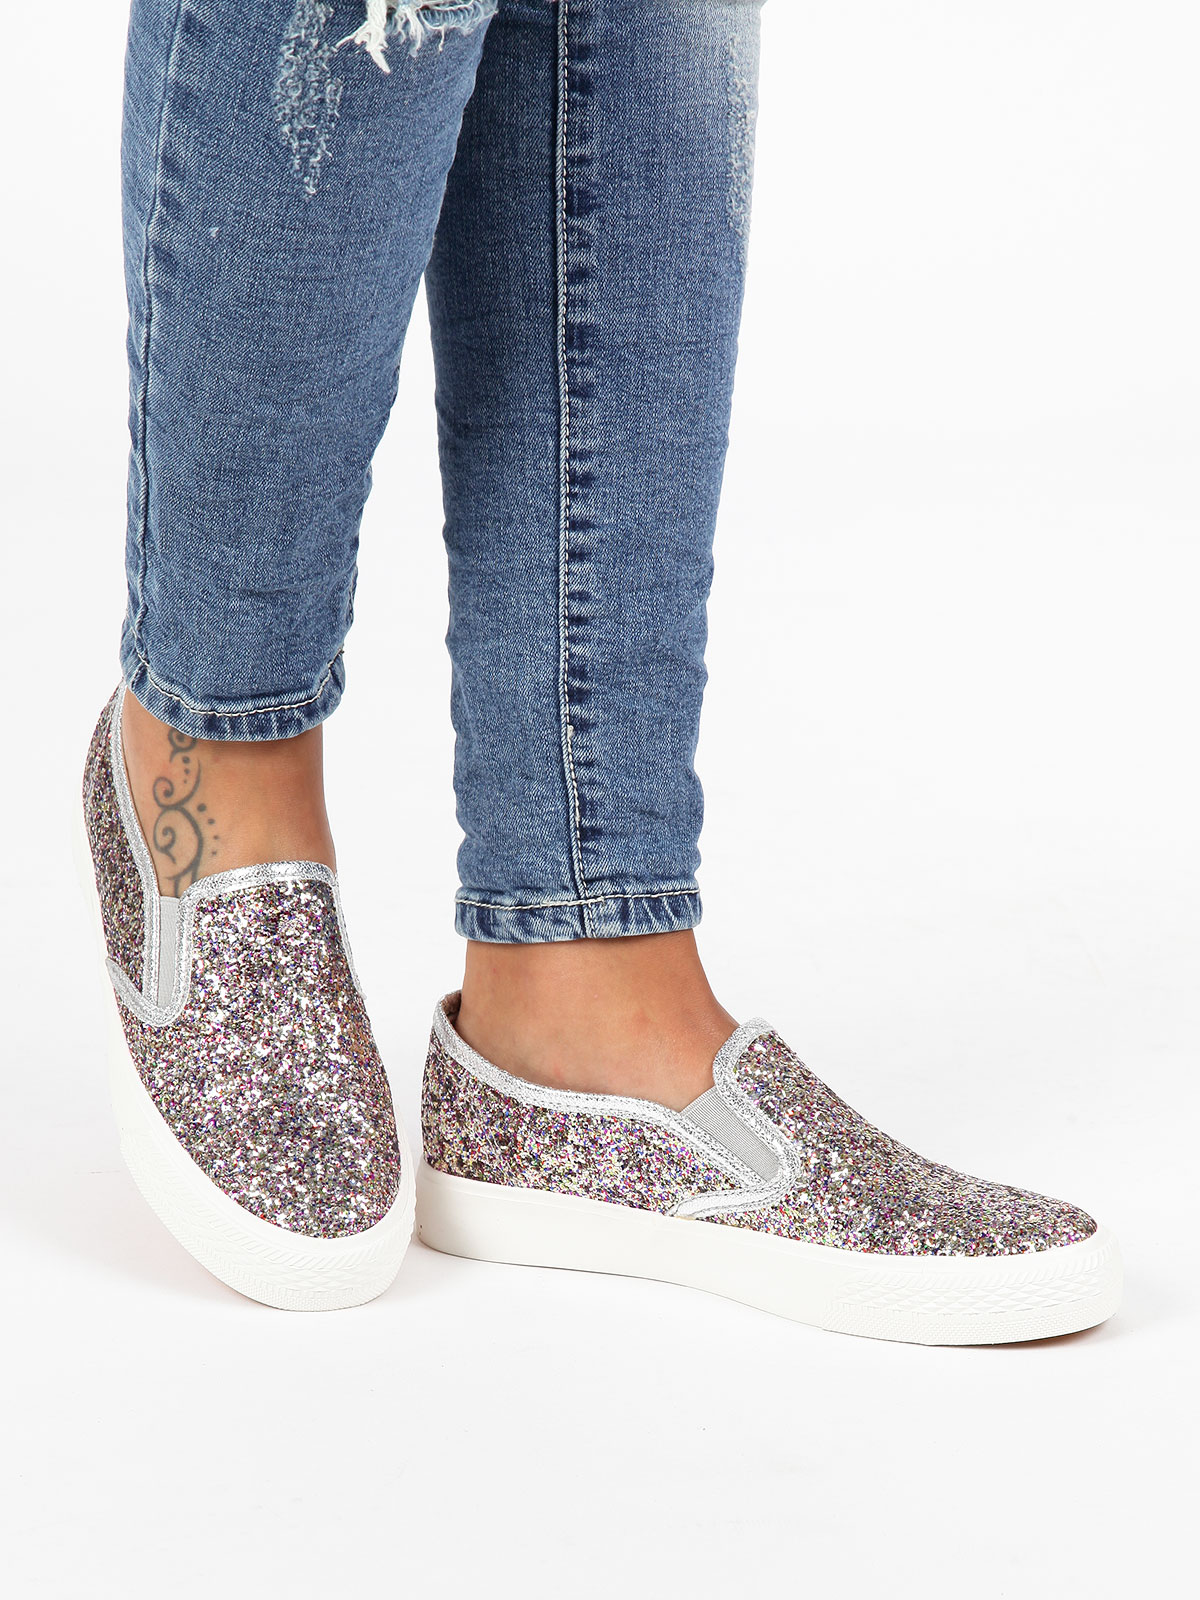 SOLADA Loafers With Glitter Colorful